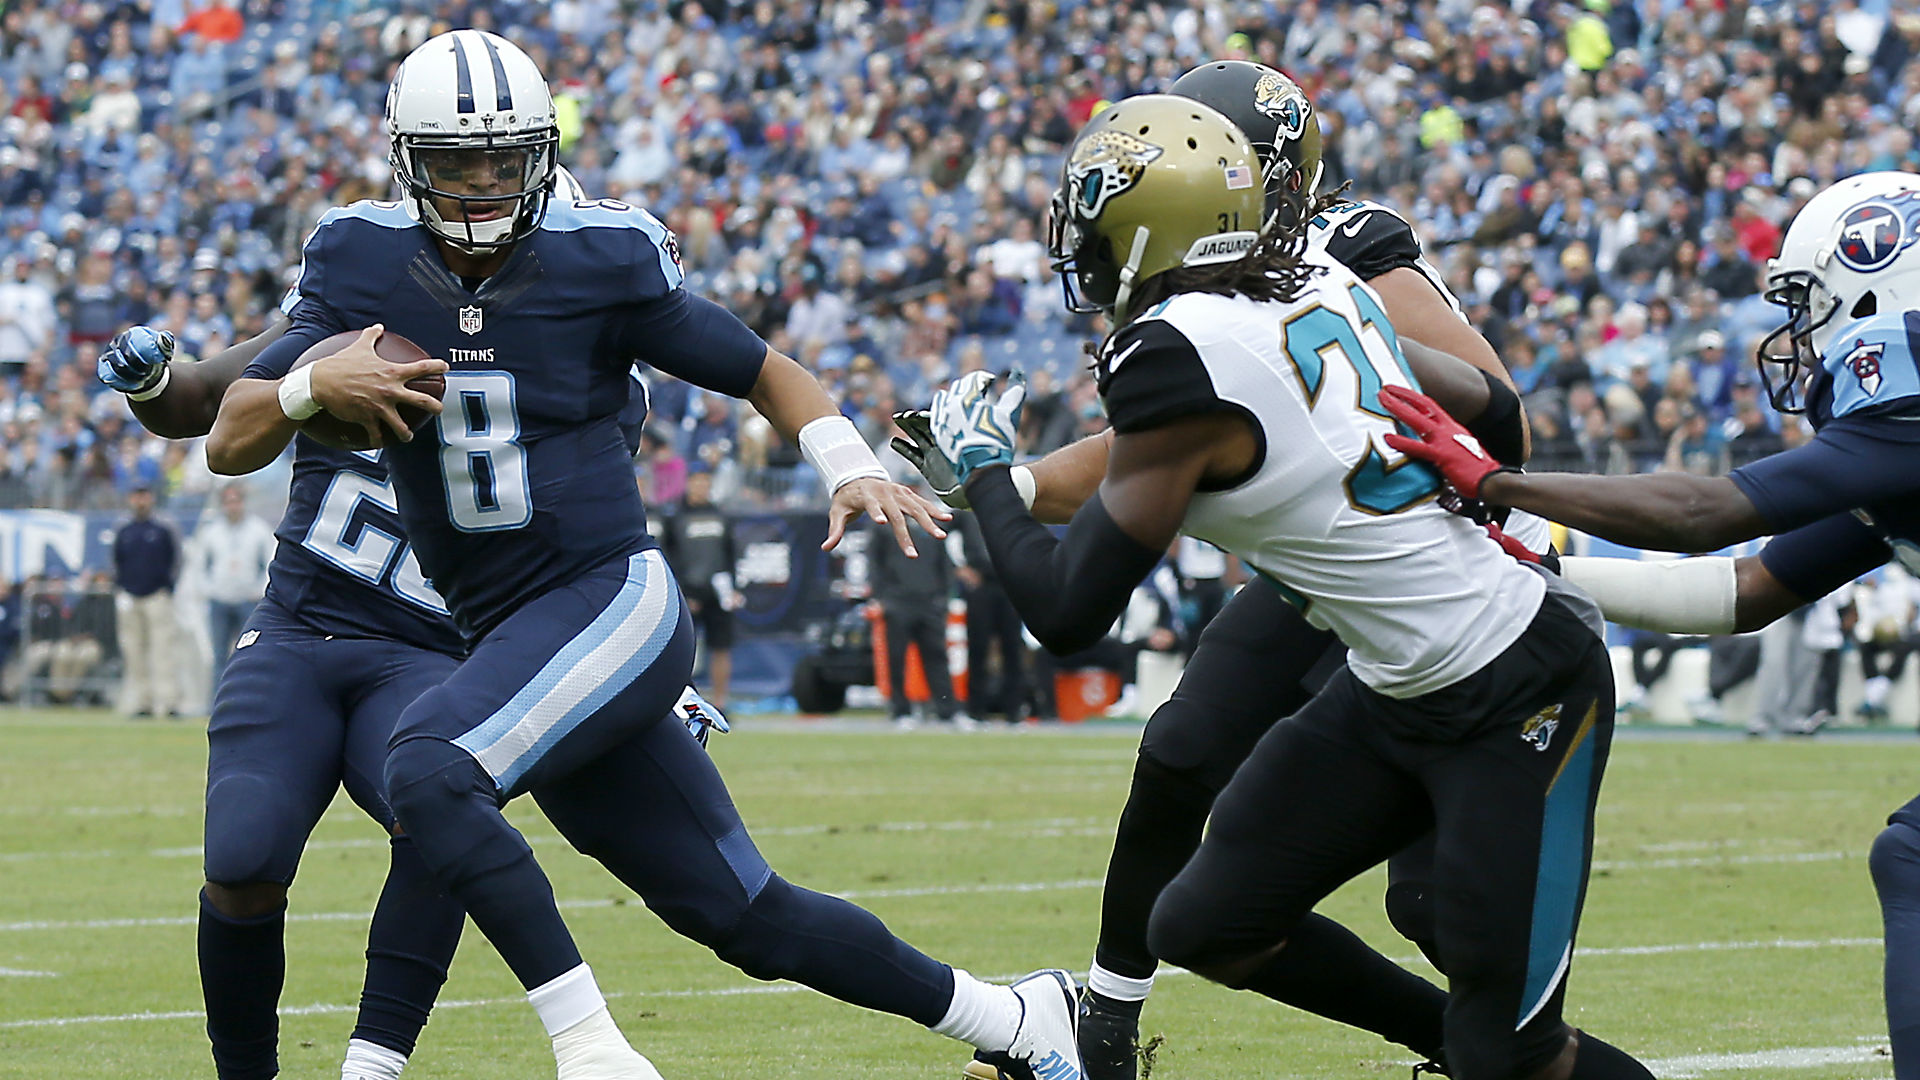 Marcus Mariota-120615-getty-ftr.jpg